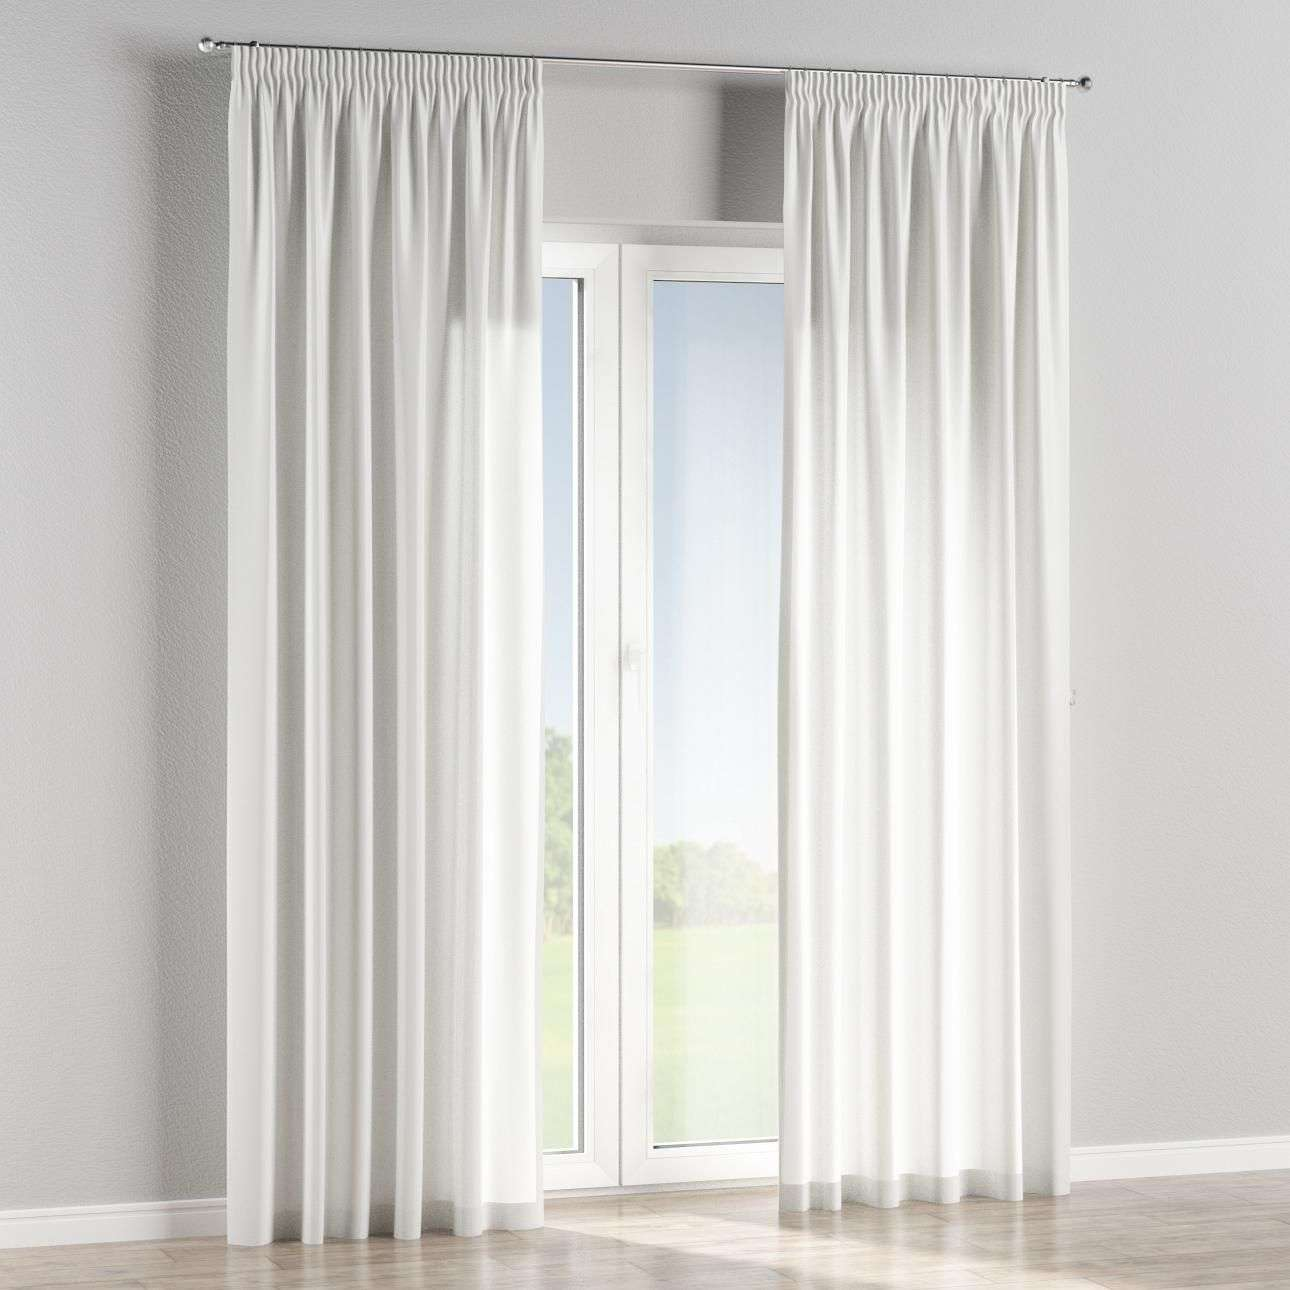 Pencil pleat curtains in collection Marina, fabric: 140-12